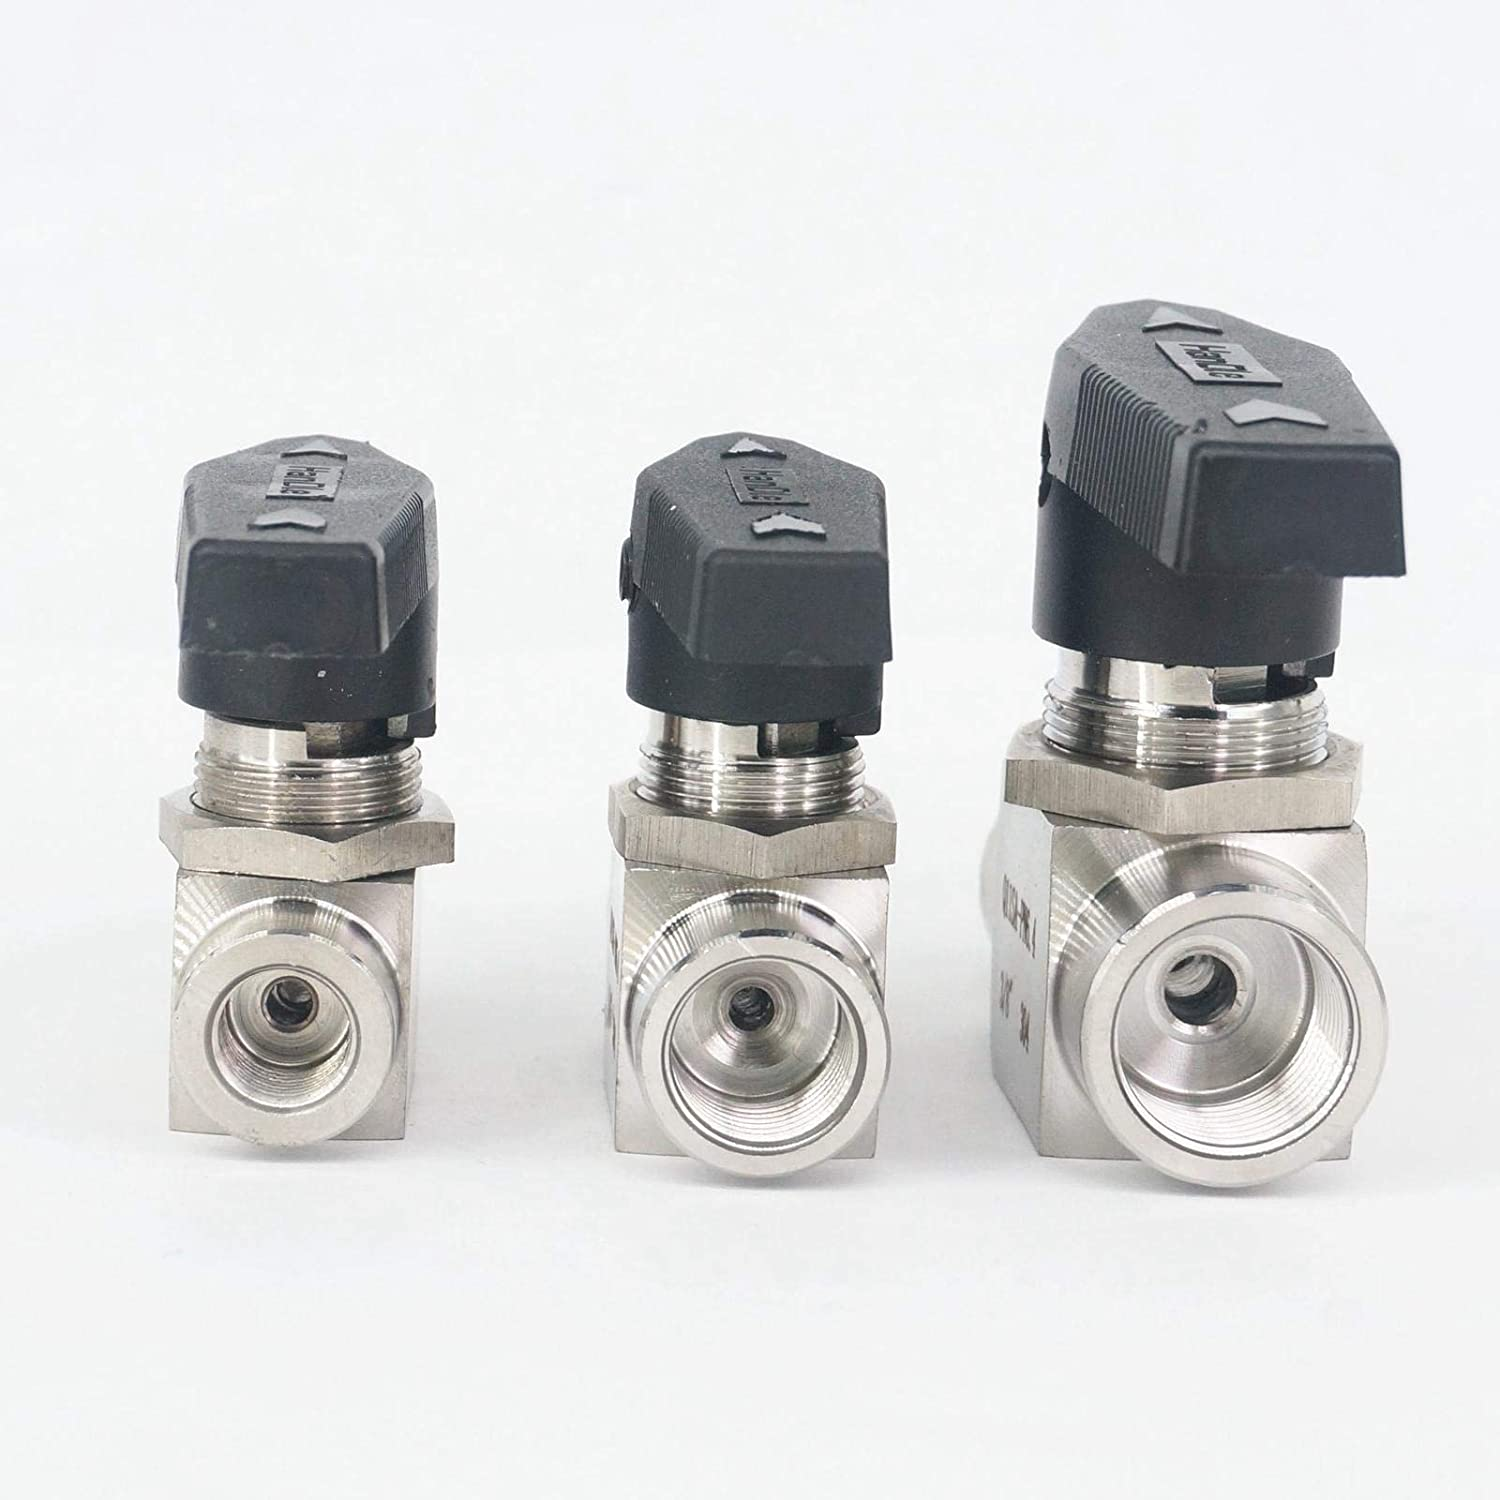 Fittings 1//4 3//8 1//2 3//4 1 BSP Euqal Female 304 Stainless Steel Shut Off Ball Valve 915 PSI Water Gas Oil Specification : 1 BAIJIAXIUSHANG-TIES Valves